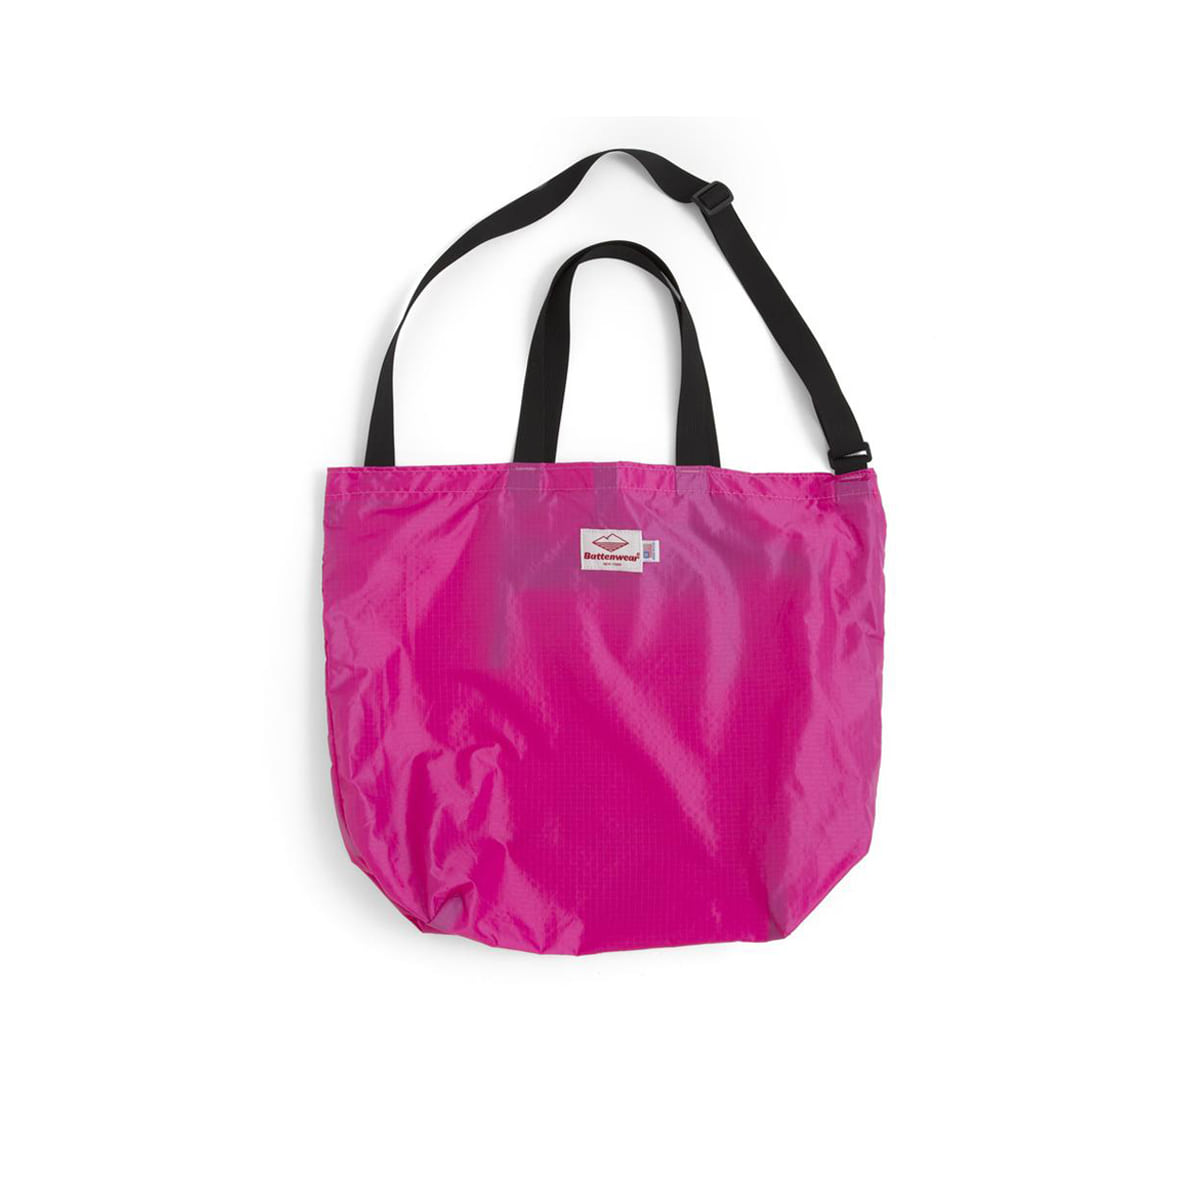 [BATTENWEAR] PACKABLE TOTE 'FUCHSIA/BLACK'